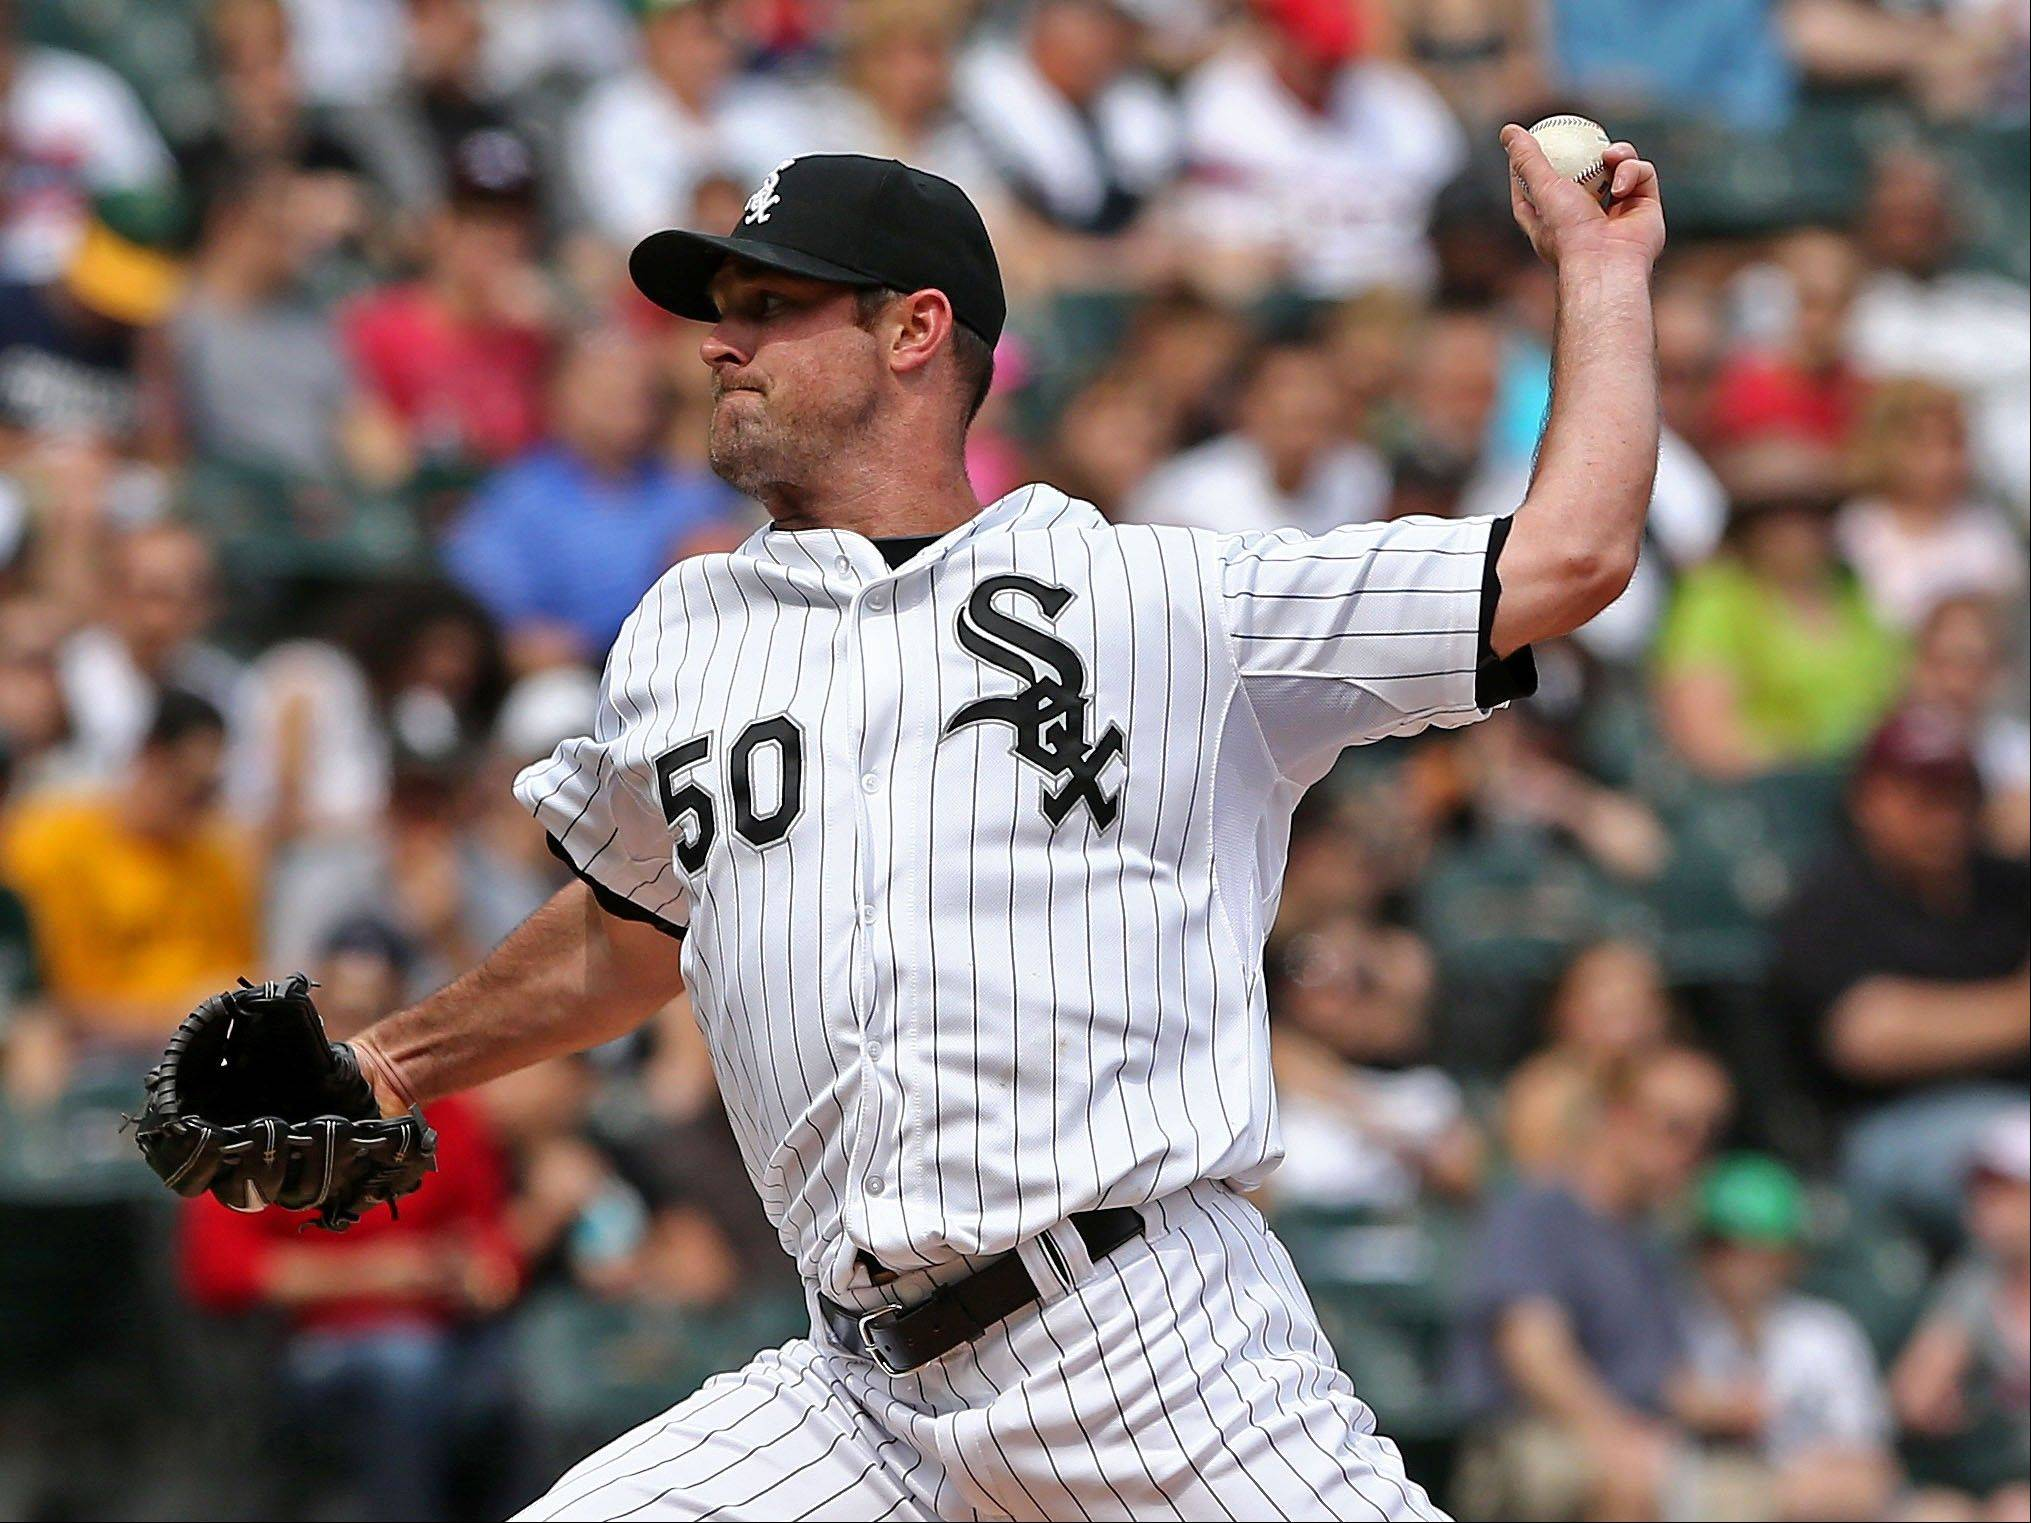 White Sox starter John Danks (1-2) retired the last 21 Athletics he faced Saturday while allowing 1 run on 3 hits in 8 innings. It was his first win since May 19 of last season, when he beat the Cubs at Wrigley and his first home win since Sept. 24, 2011.